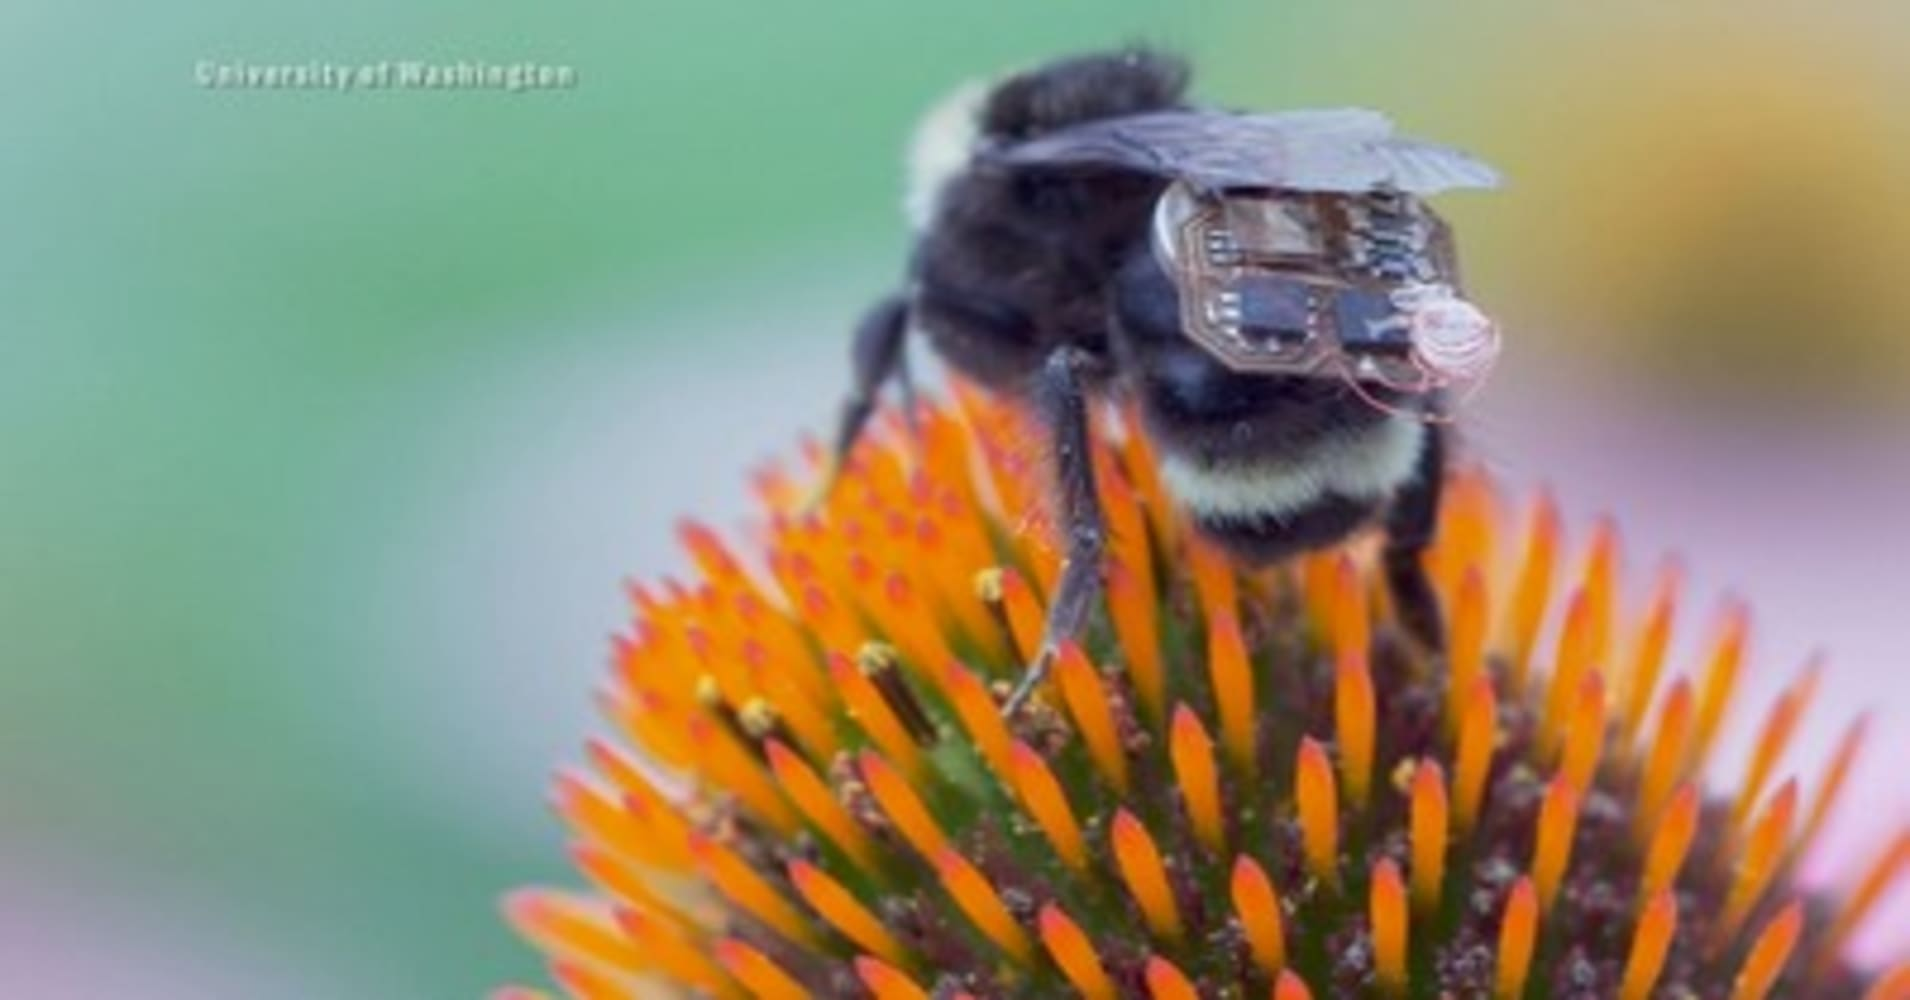 Researchers turning bumblebees into live drones, calling it